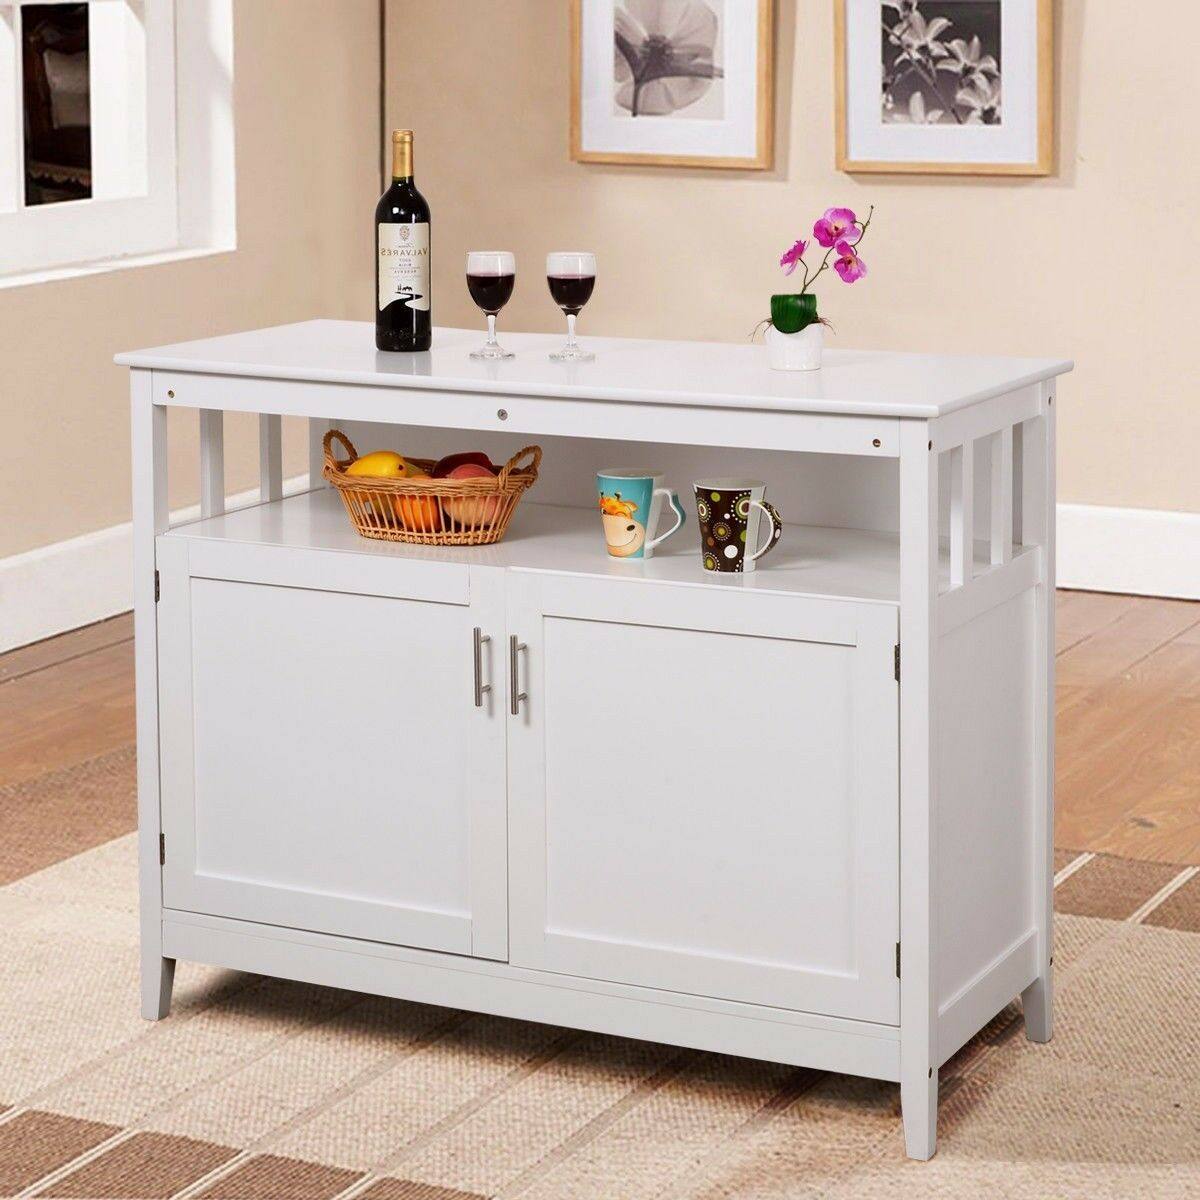 Buffet Kitchen Cabinet Wood Console Storage Cabinet Sideboard Buffet Kitchen Cupboard Counter Island